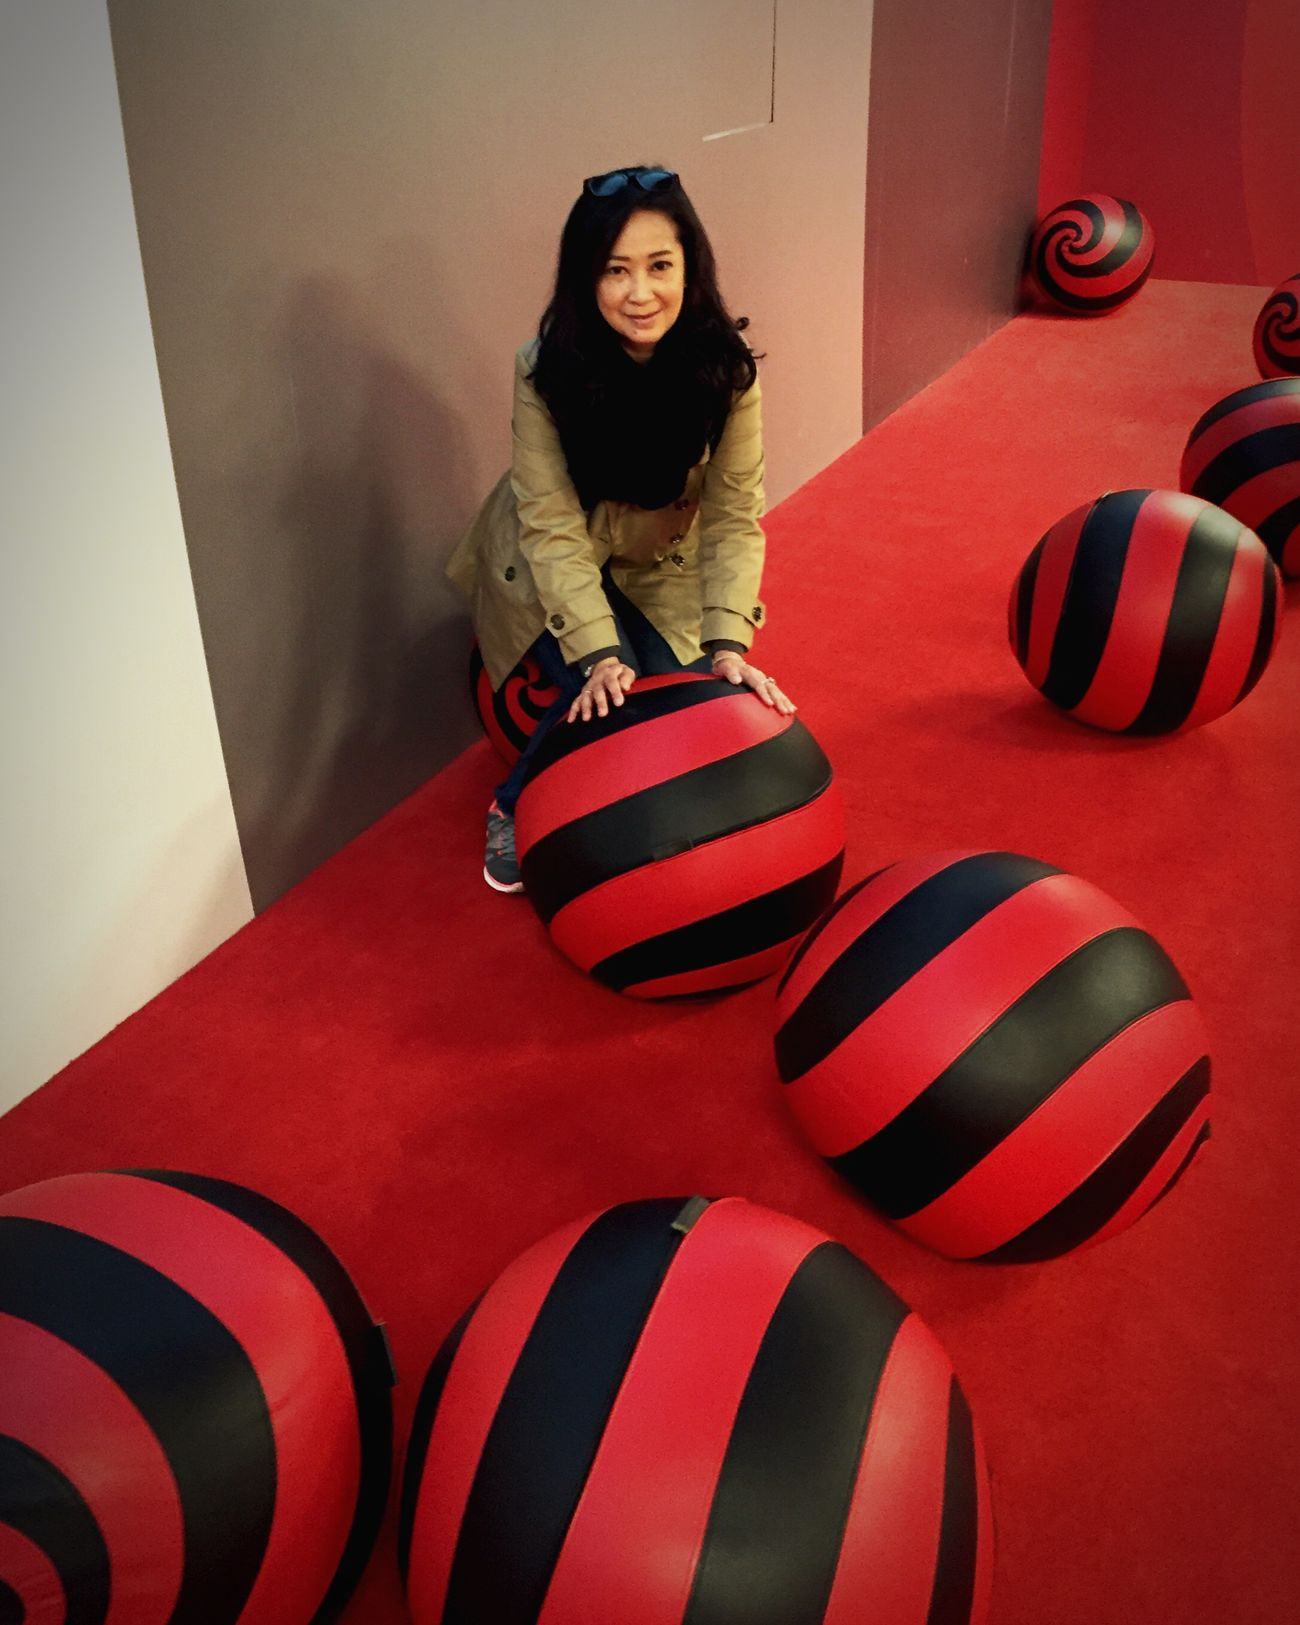 At Casa Milan Daytripout Europe Holiday  Taking Photos Hanging Out That's Me Play With The Balls Casa Milan Just Me Enjoying Life Relaxing Enjoying The Moment Beautiful Place Red Black